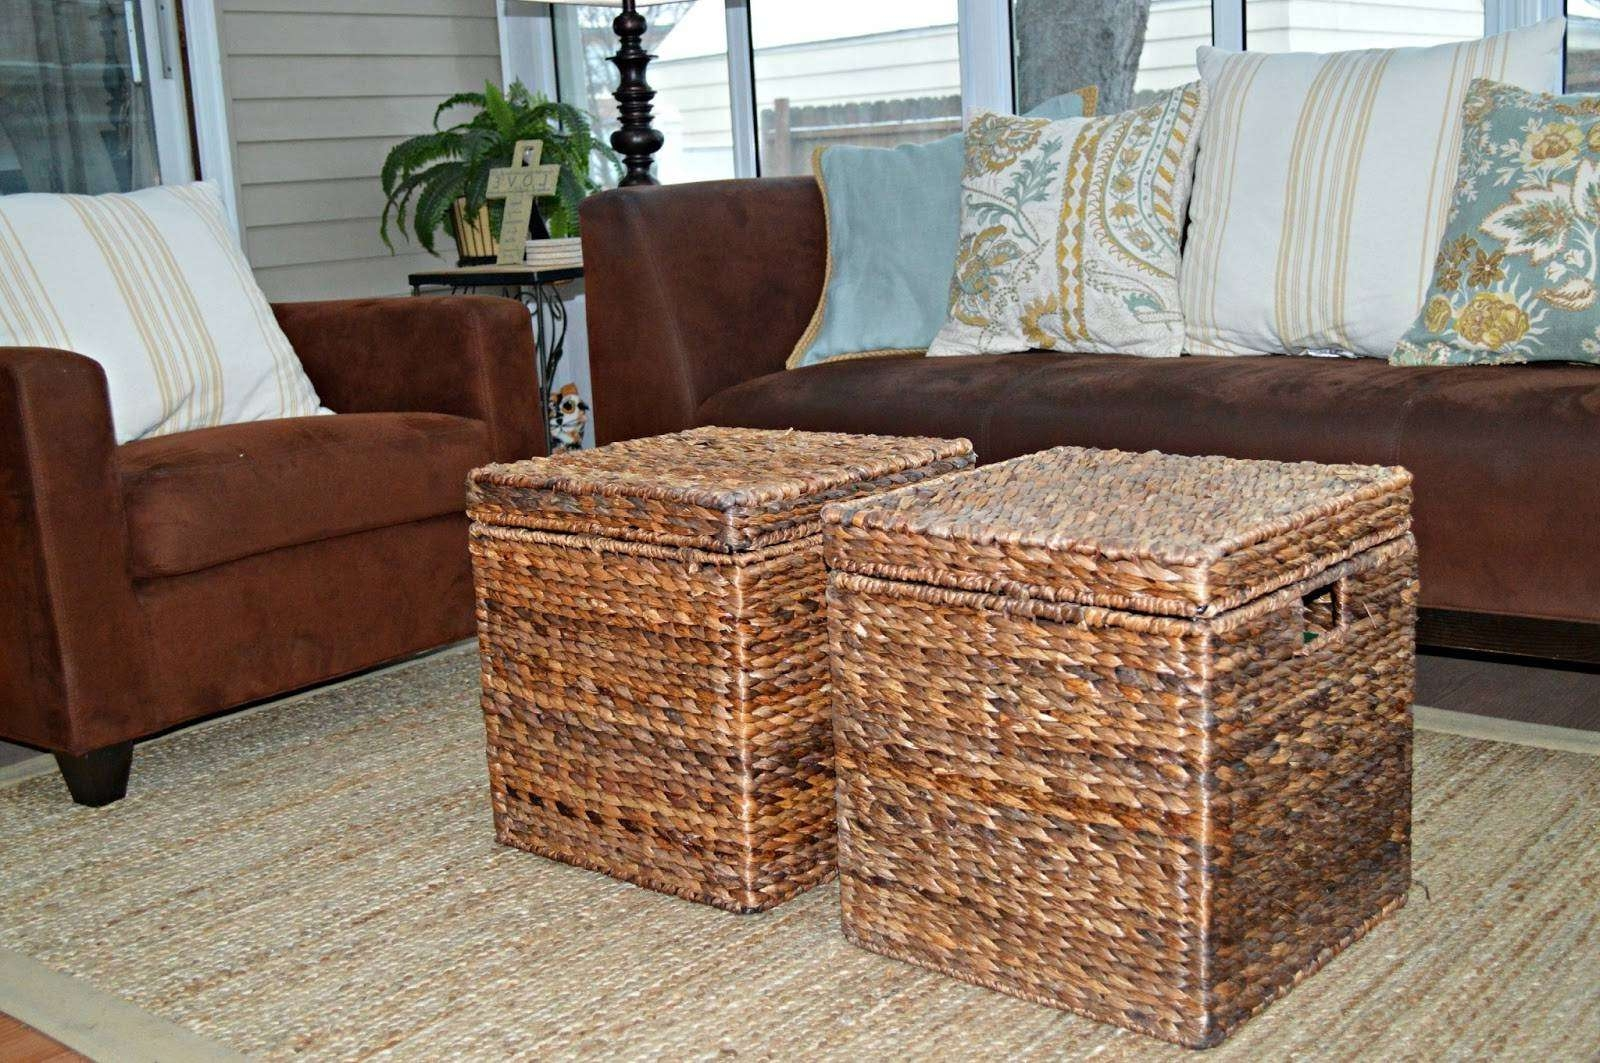 Square Coffee Table With Storage Cubes Lovely Square Coffee Table Intended For Preferred Square Coffee Tables With Storage Cubes (View 6 of 20)